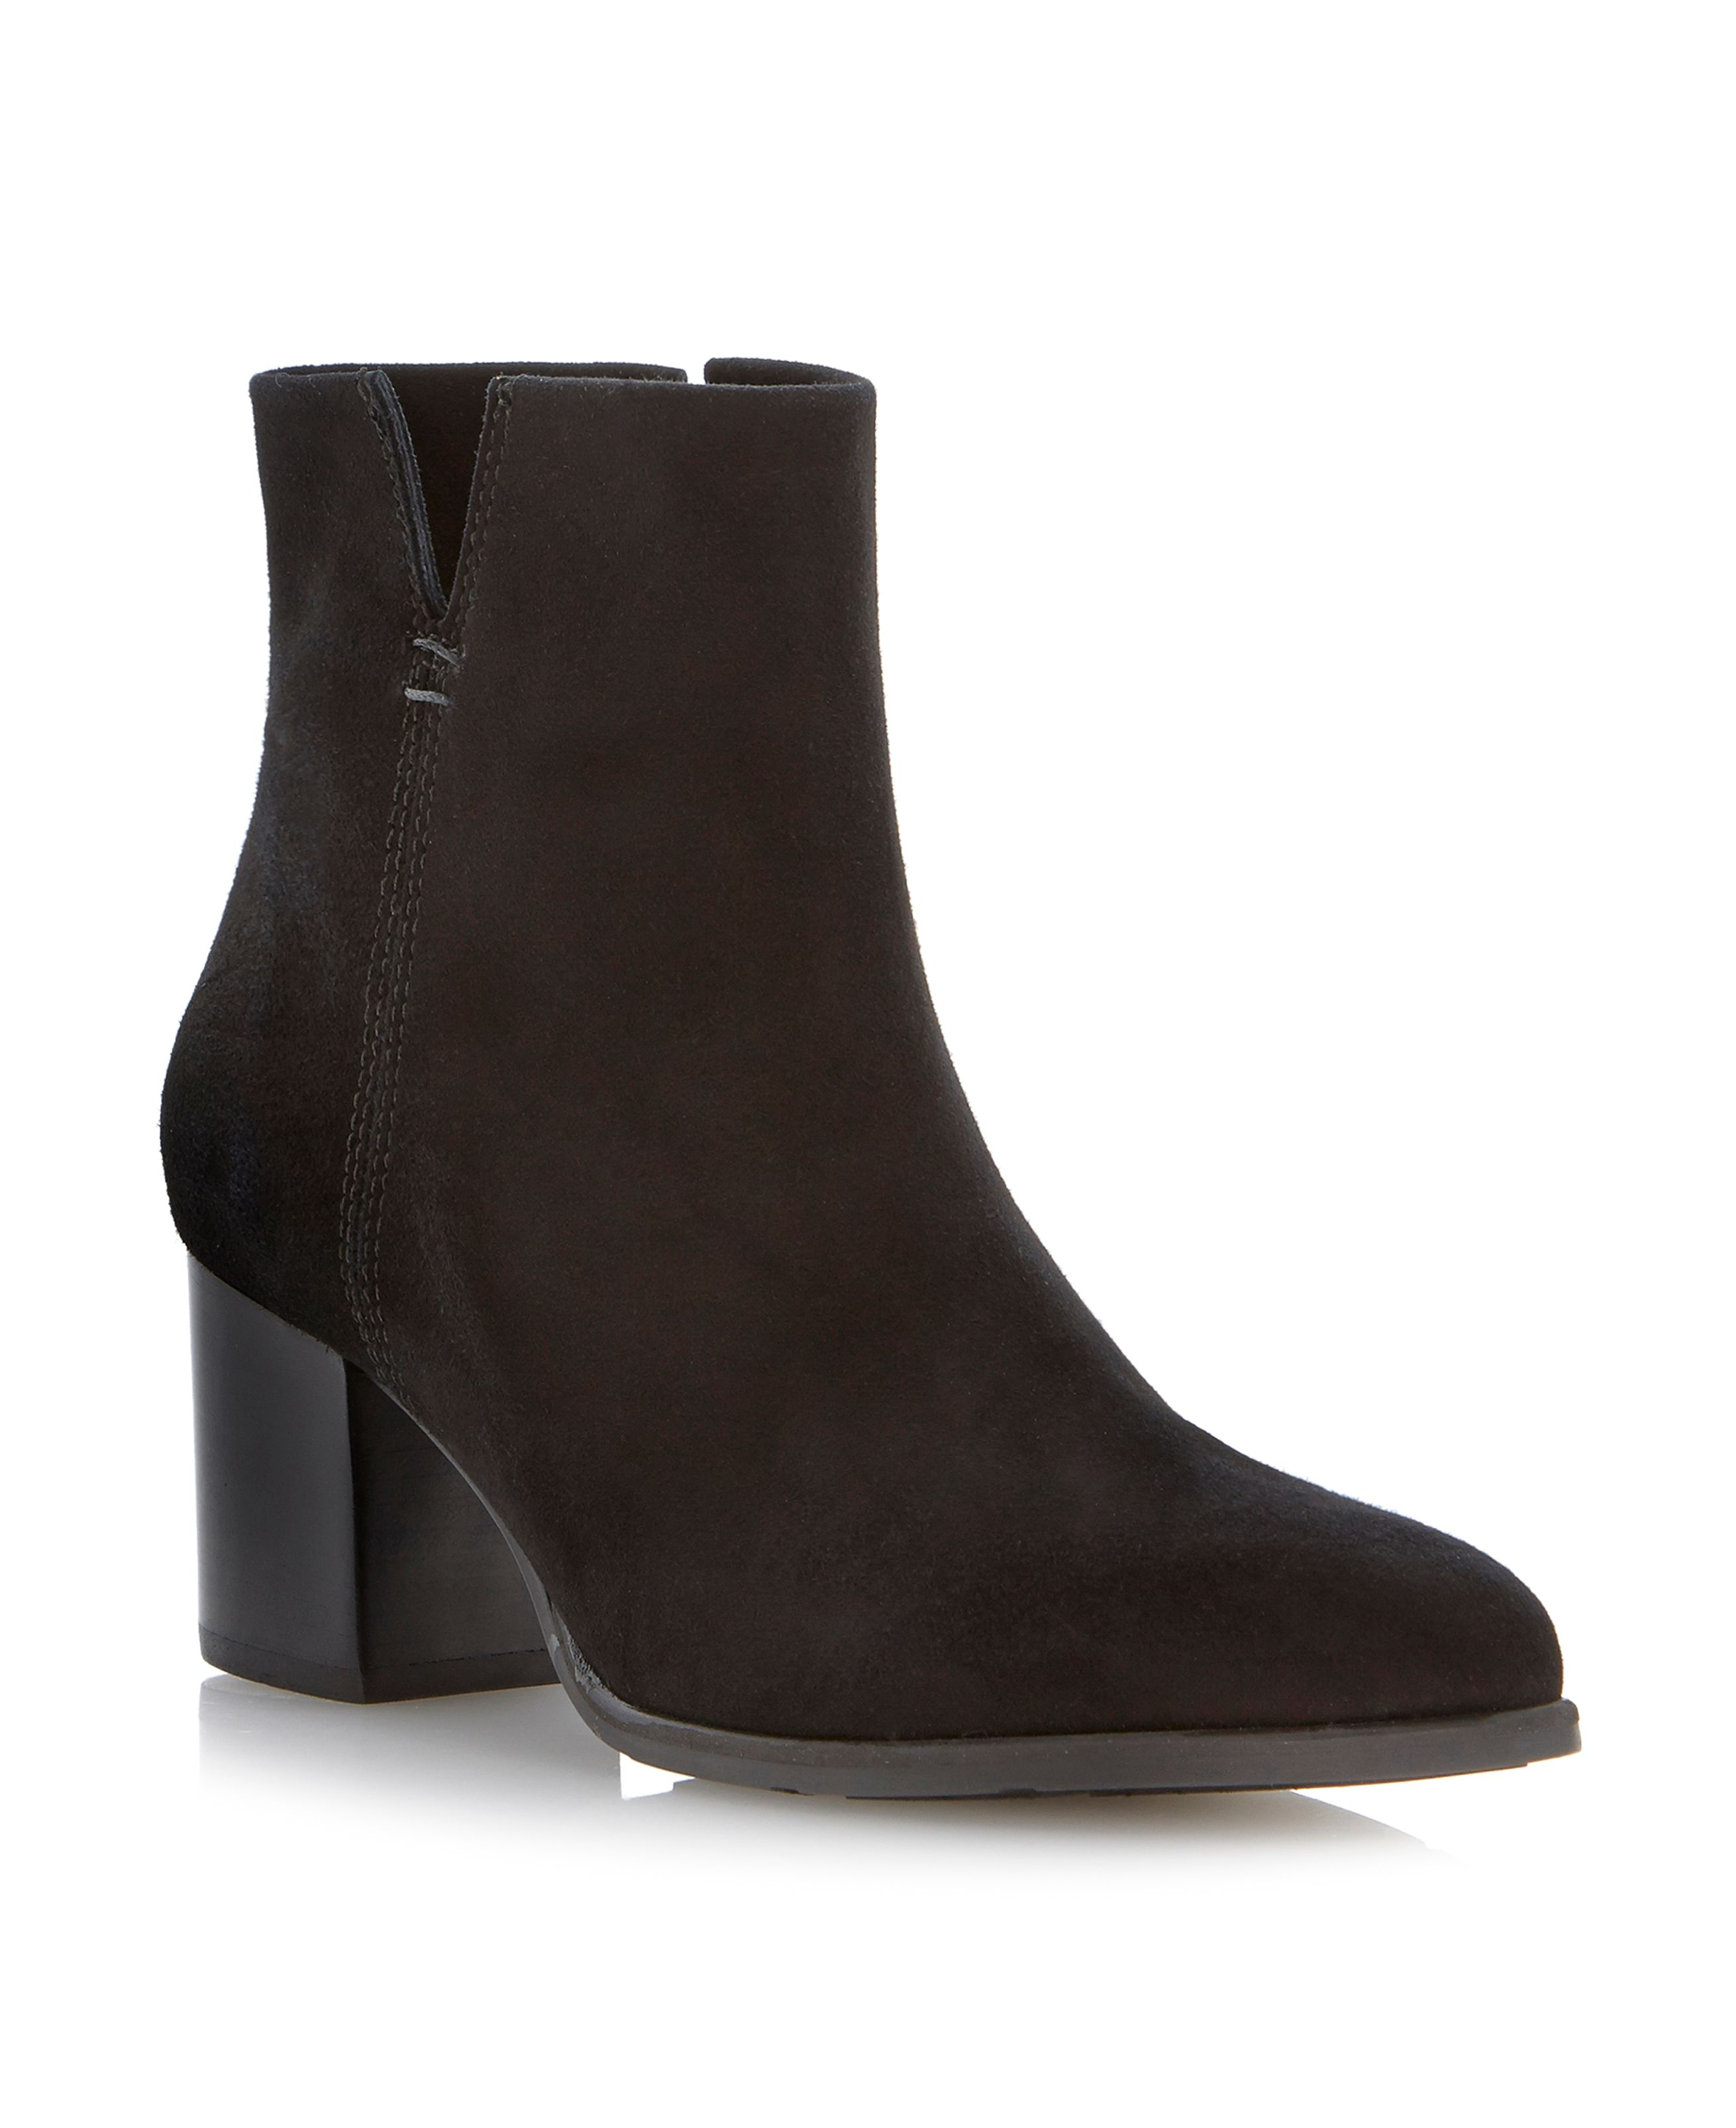 Paislie stacked heel pointed toe ankle boots